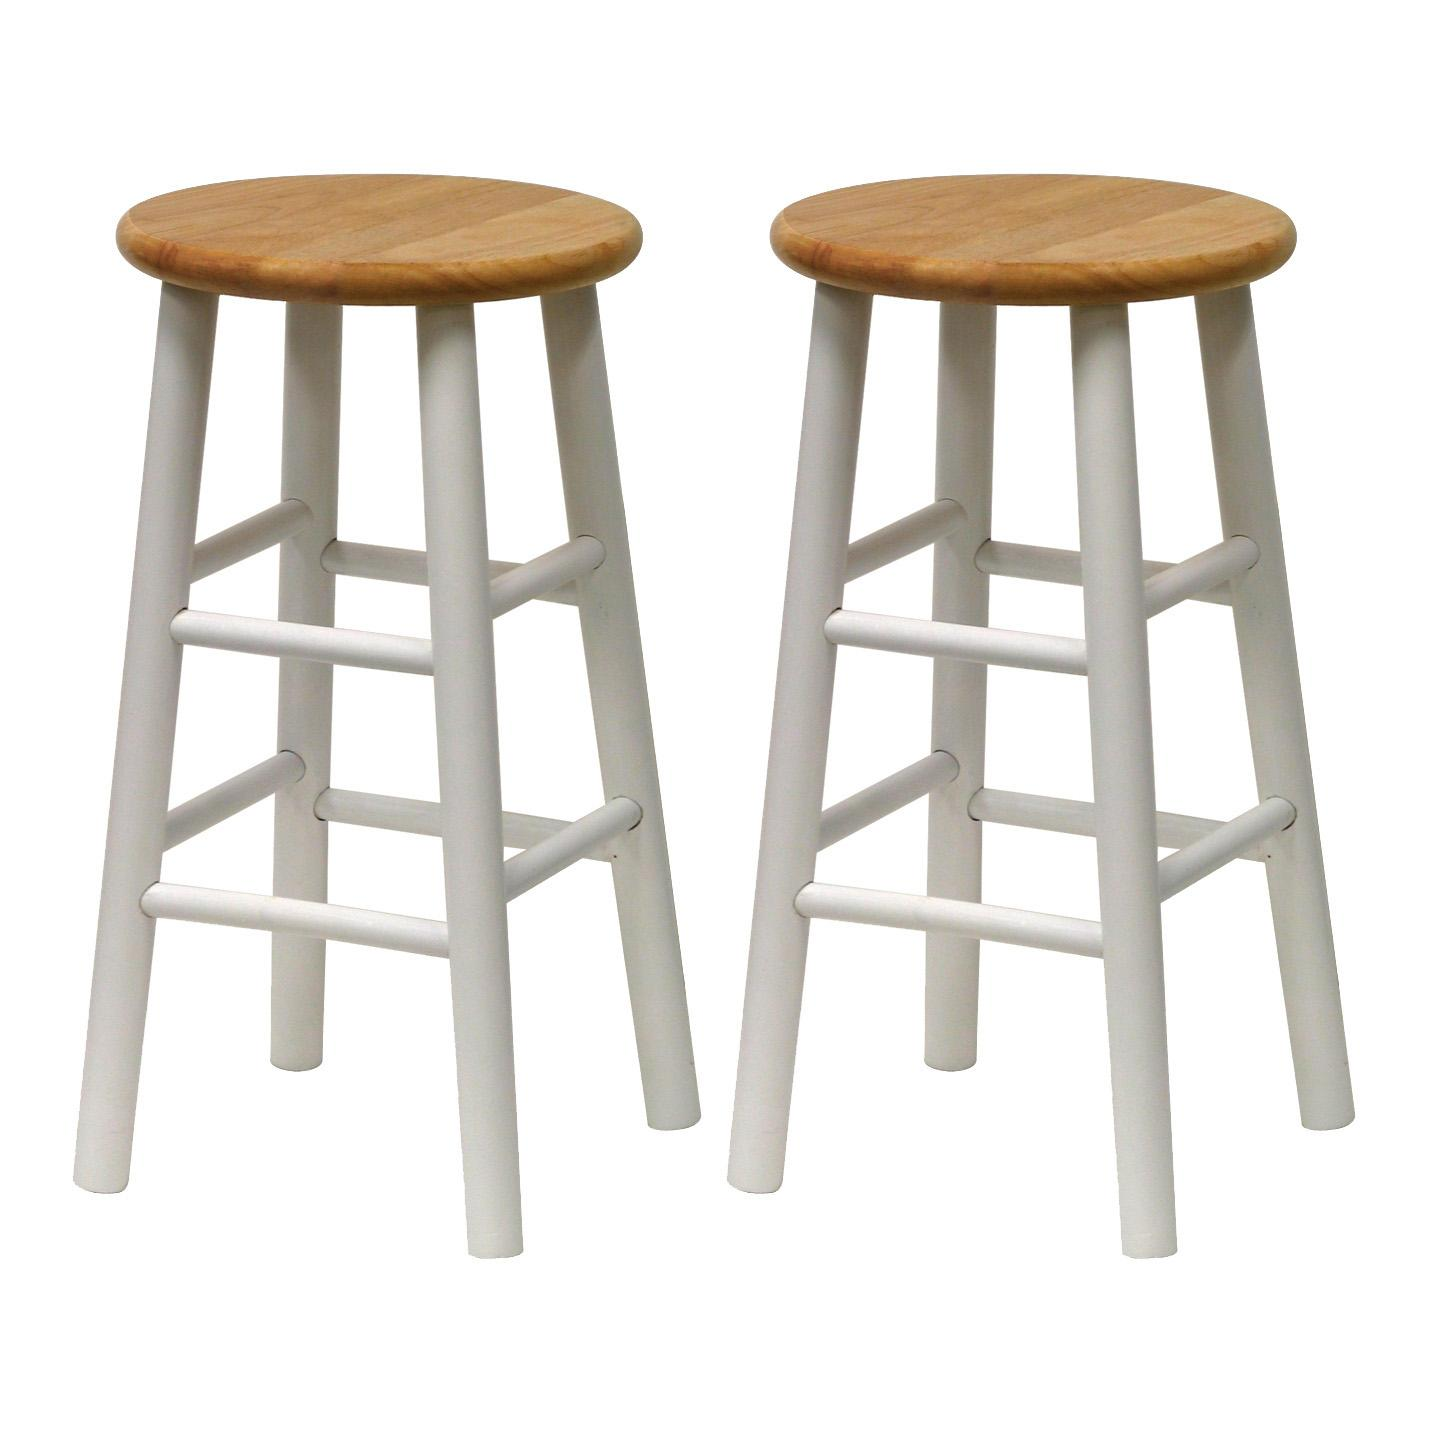 24 inch bar stools Amazon.com: Winsome Wood 24 Inch Beveled Seat Barstool with  24 inch bar stools